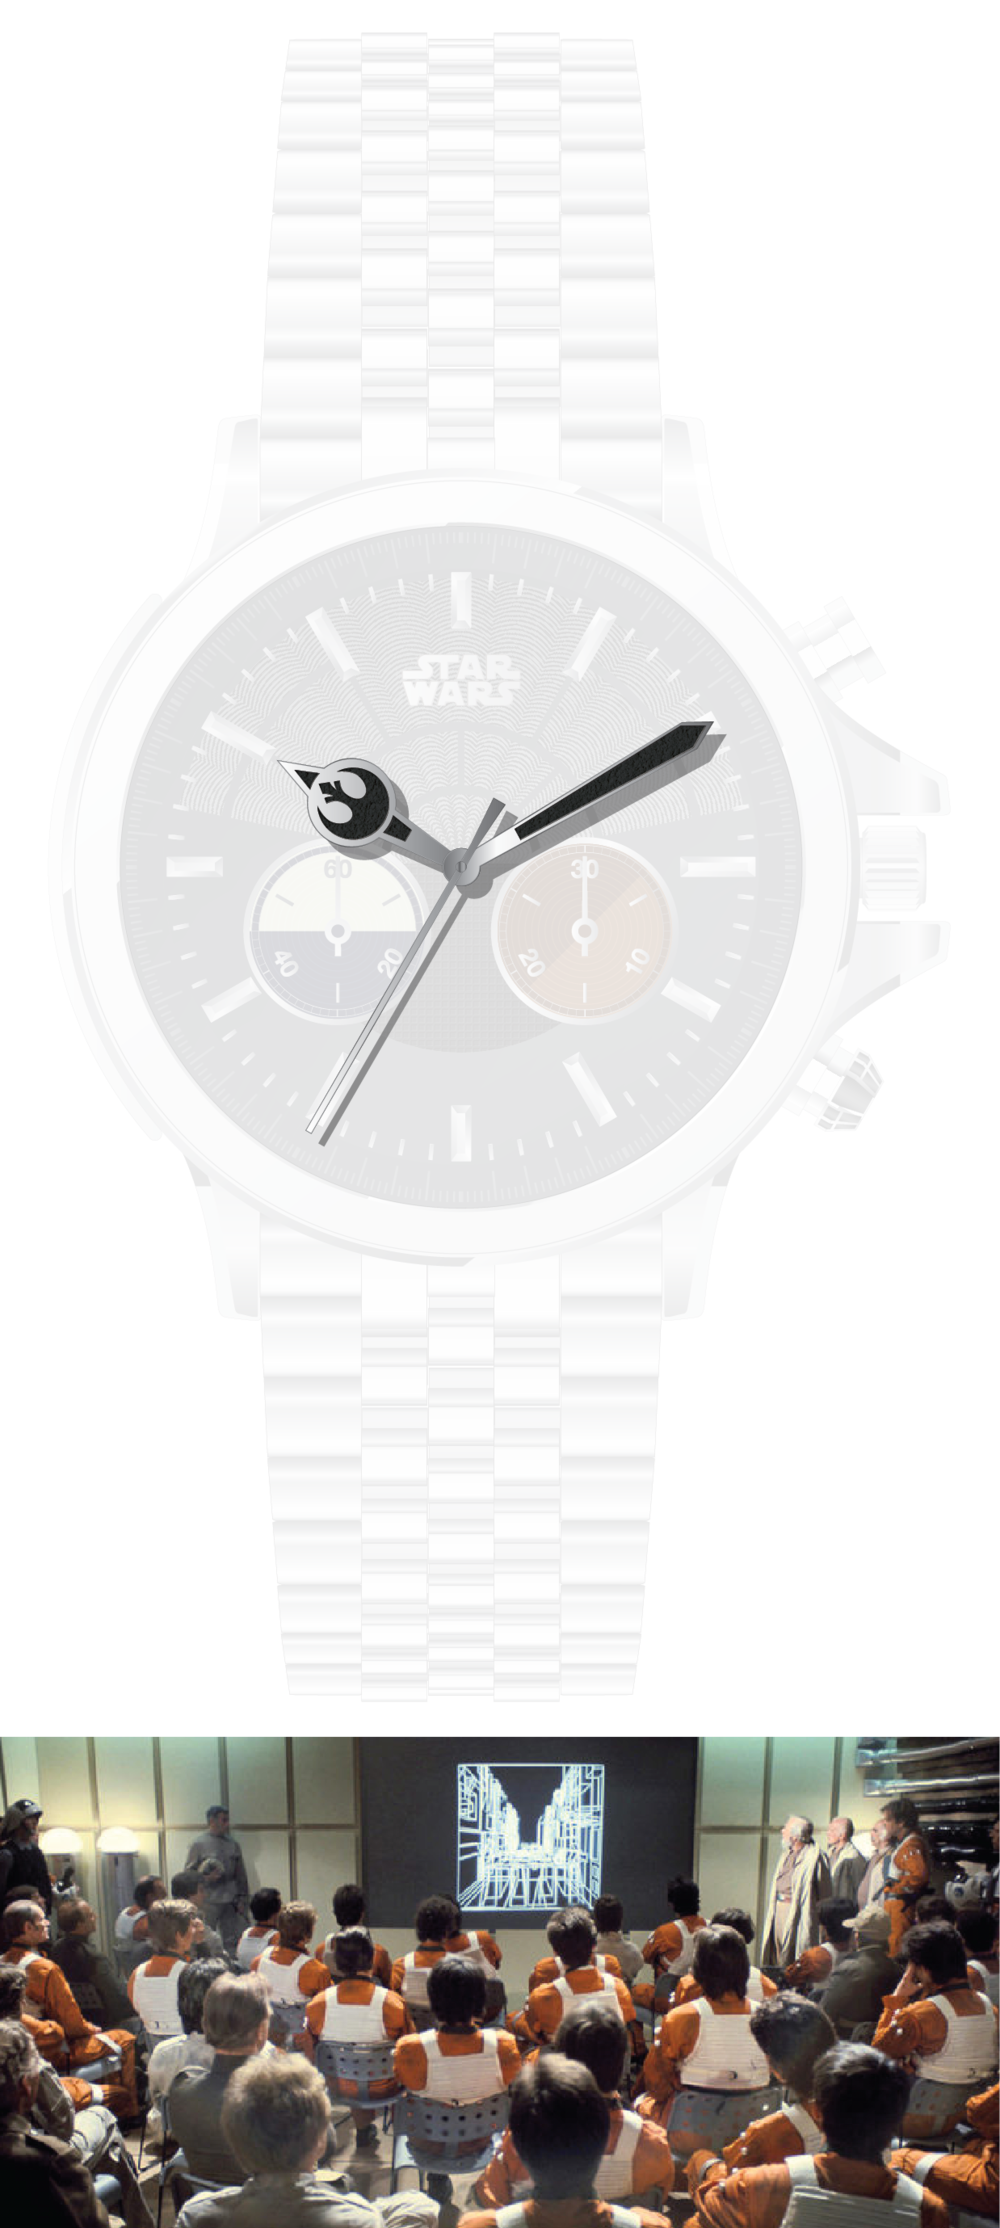 The hour hand boasts a large Rebel Alliance logo.